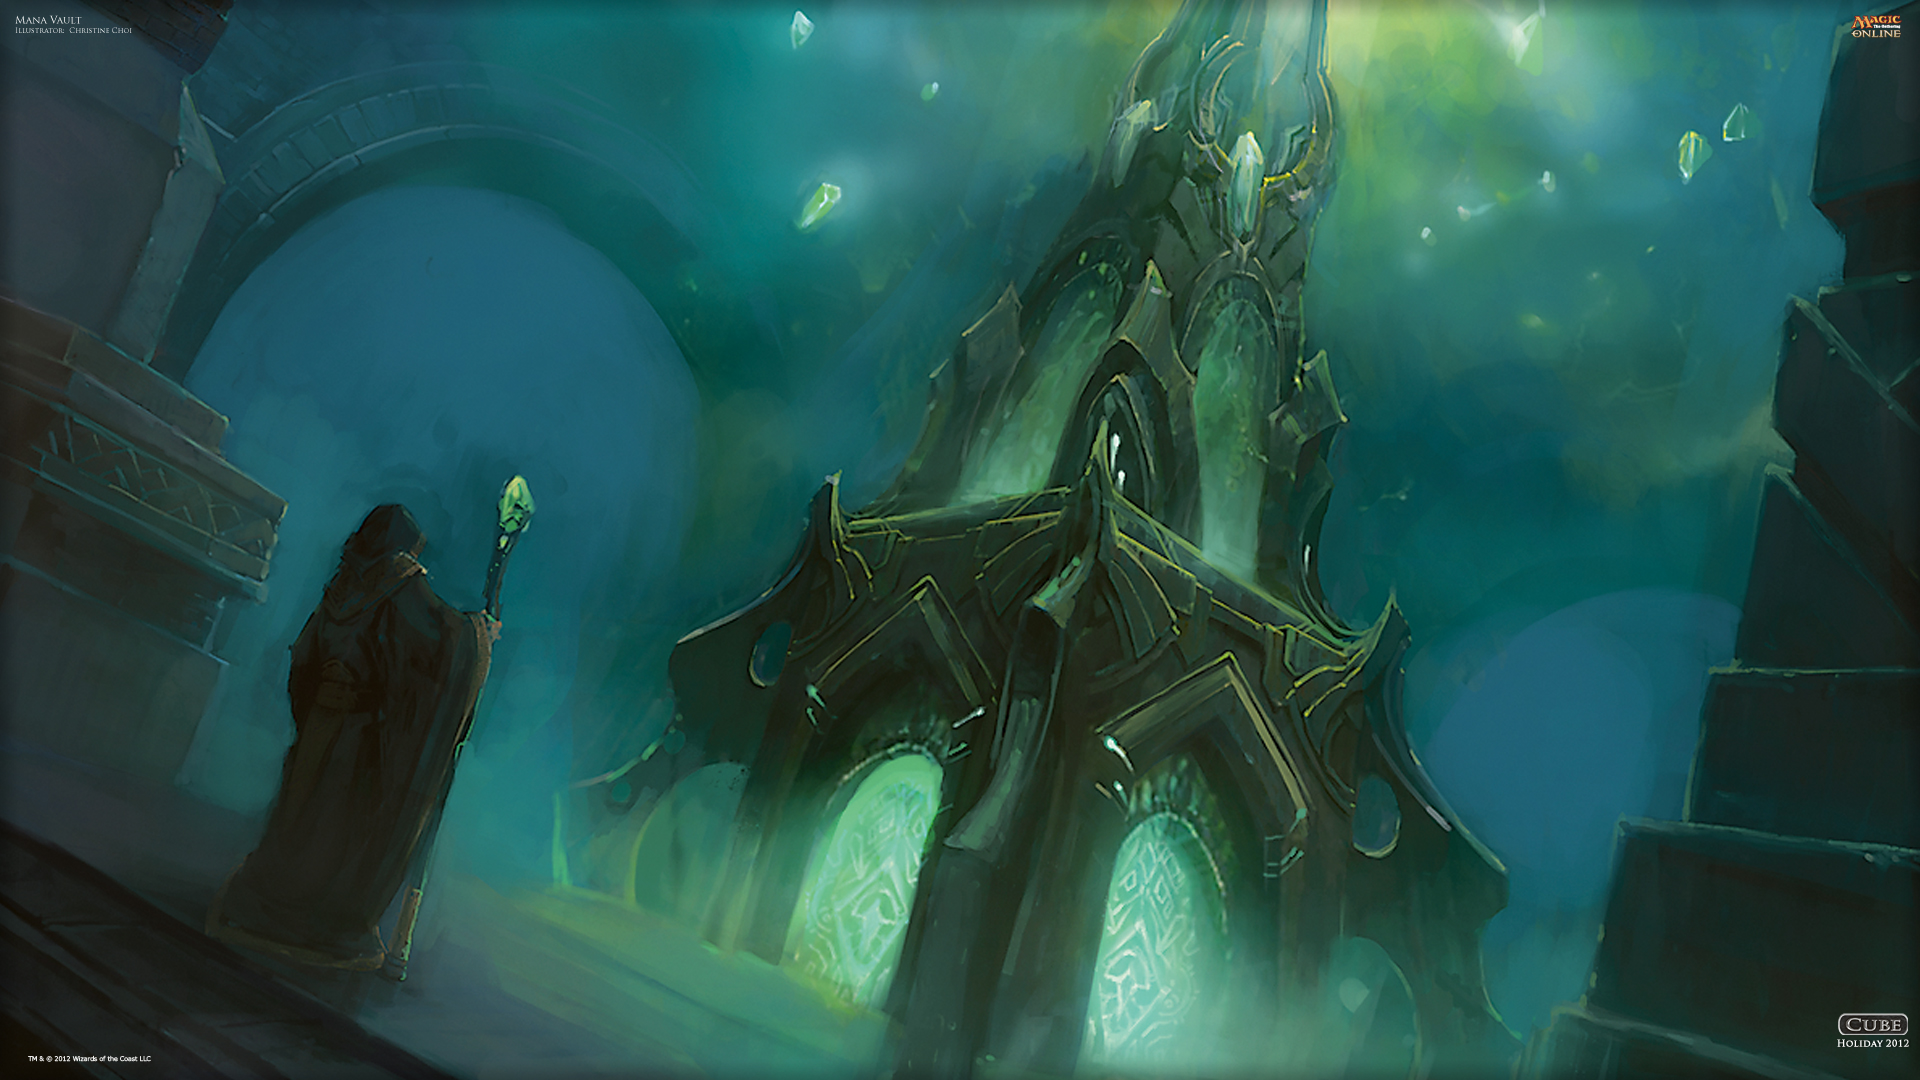 Wallpaper Of The Day: Mana Vault